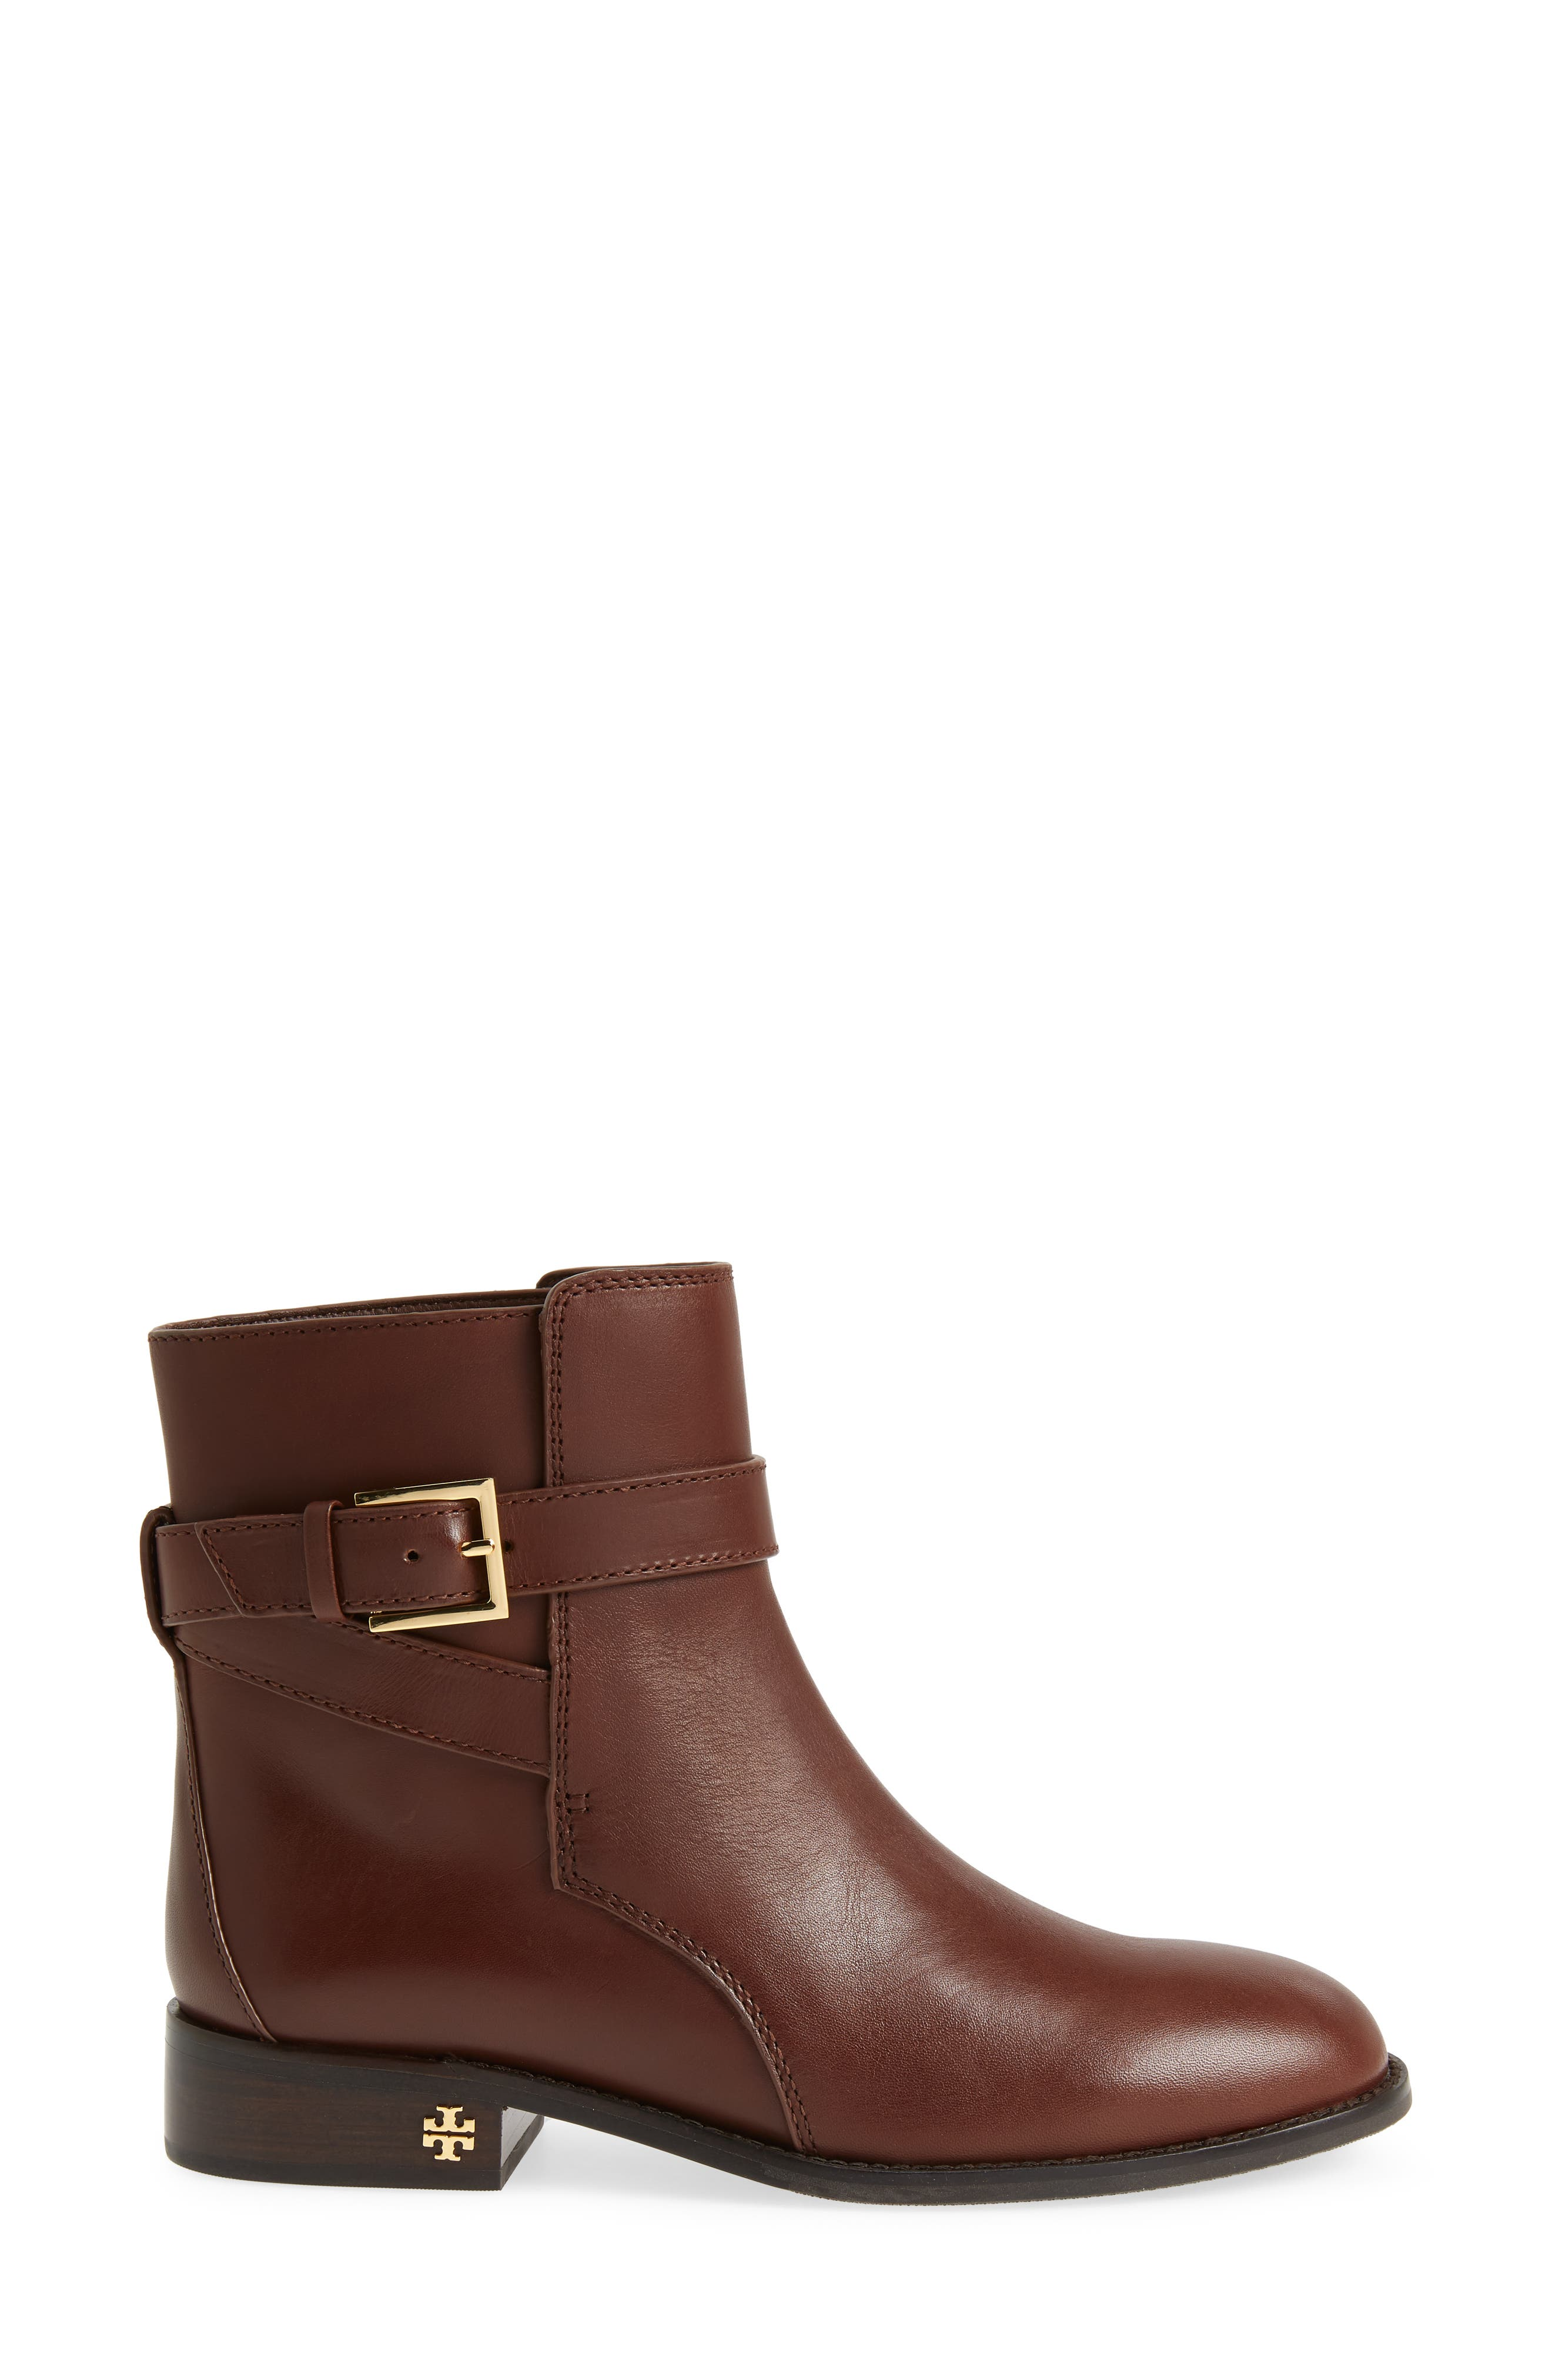 TORY BURCH, Brooke Bootie, Alternate thumbnail 3, color, 200